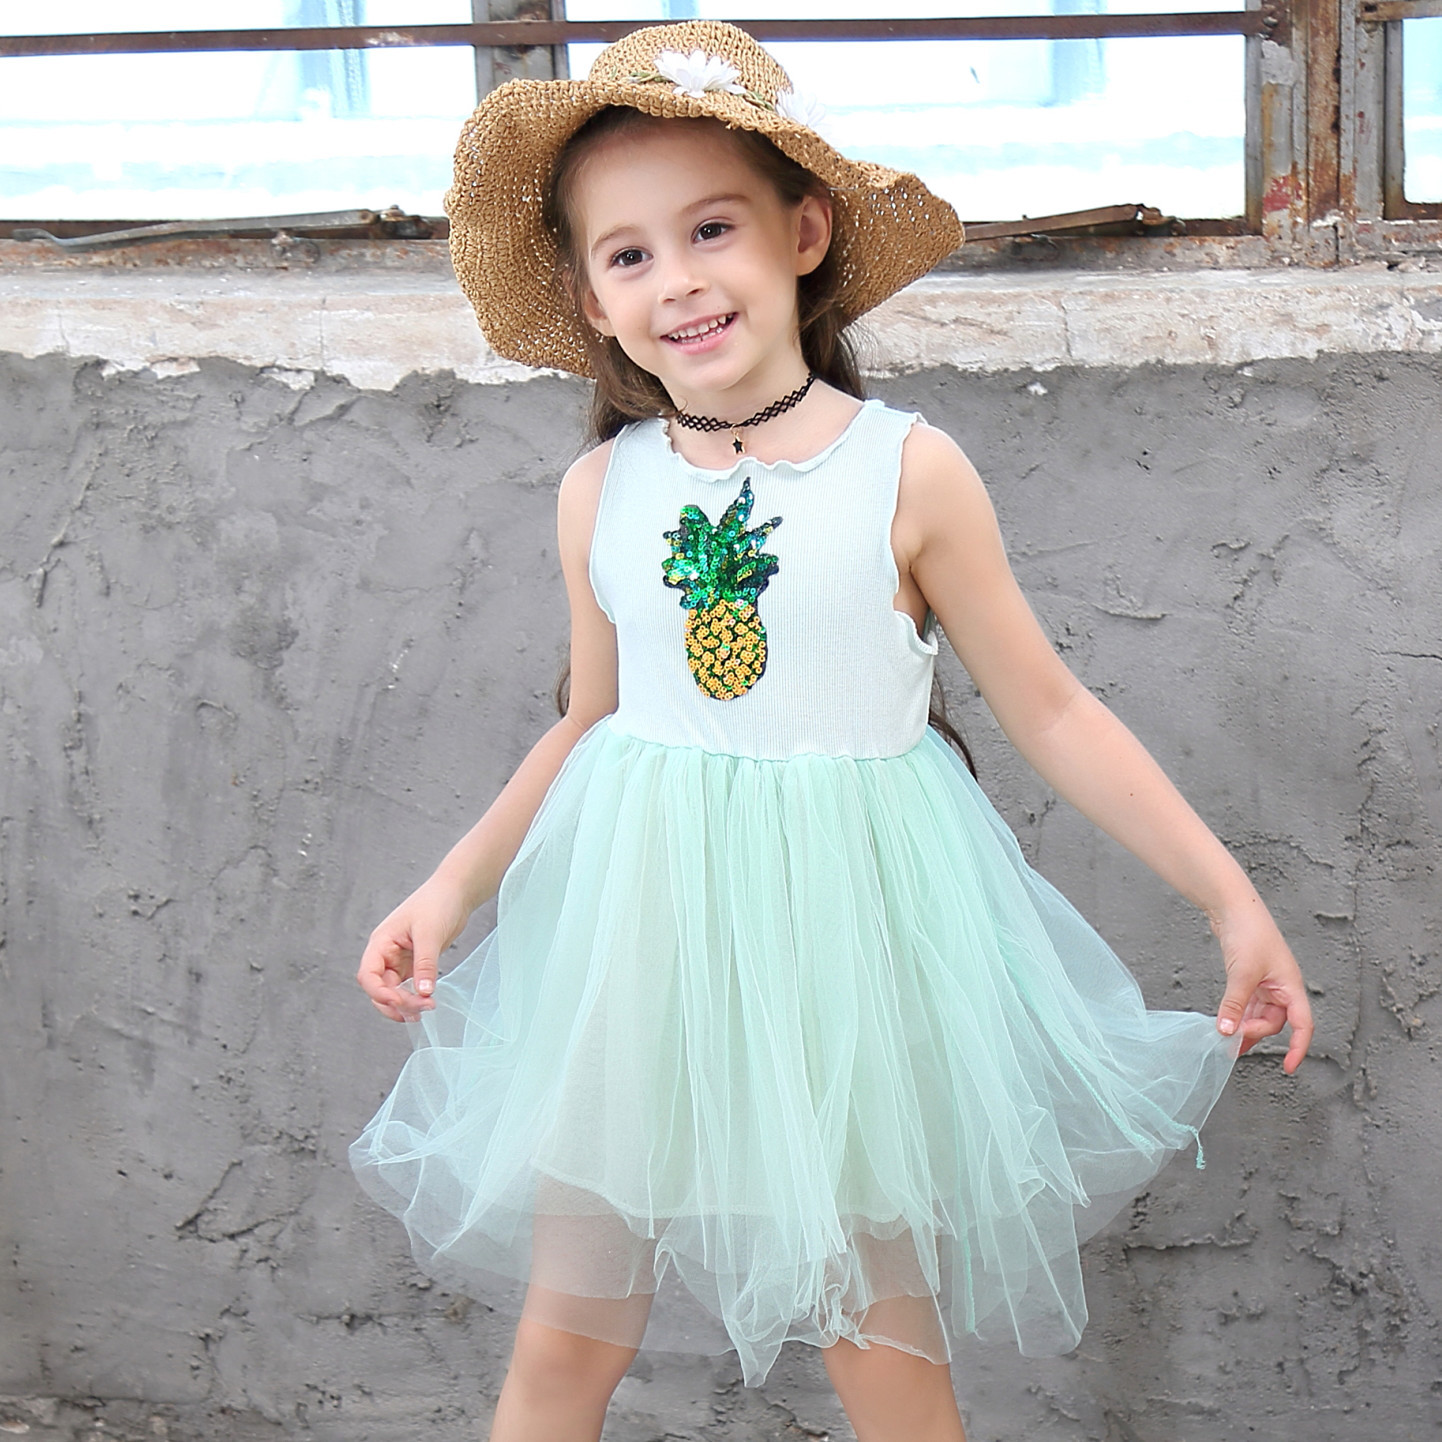 Kids girls dress 2019 summer new cotton pineapple mesh sleeveless childrens clothing